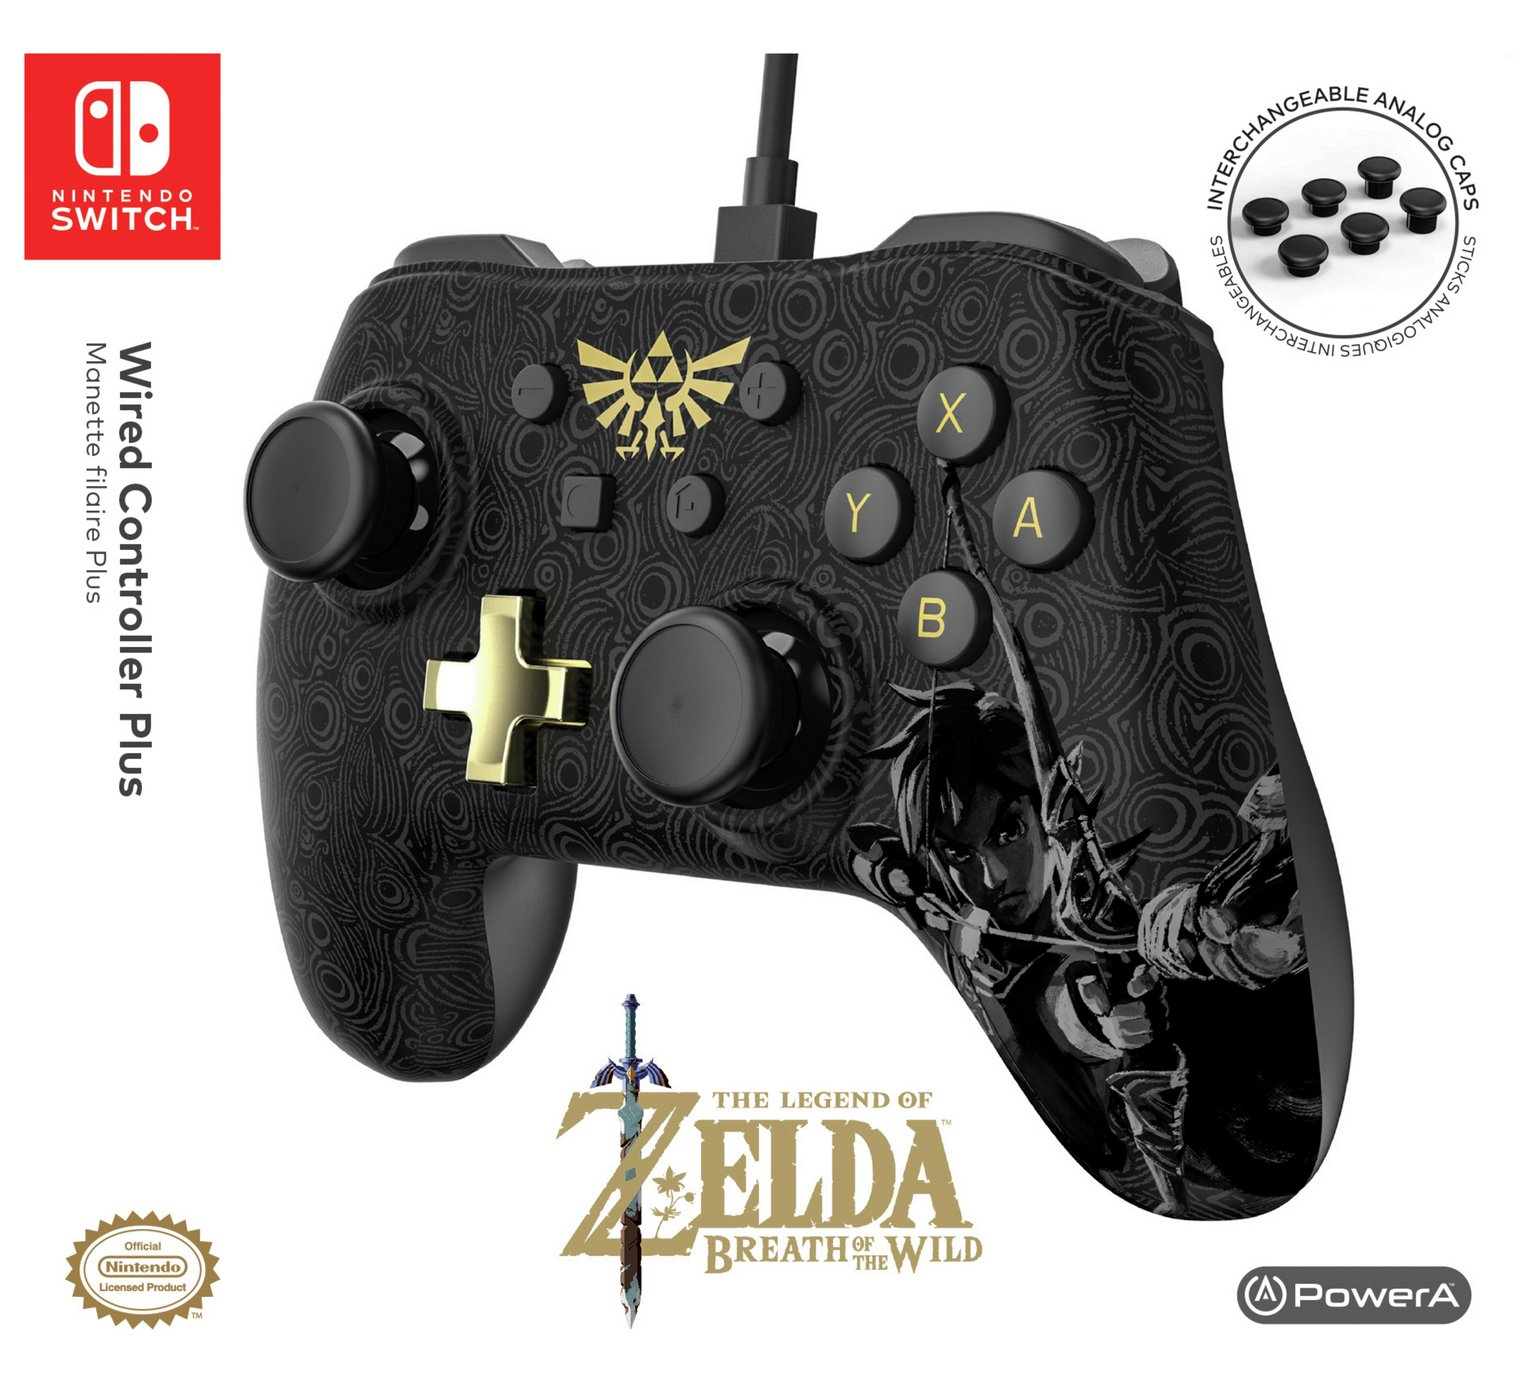 Powera Release Mario And Zelda Wired Controller Plus For Nintendo Switch Nintendo Insider